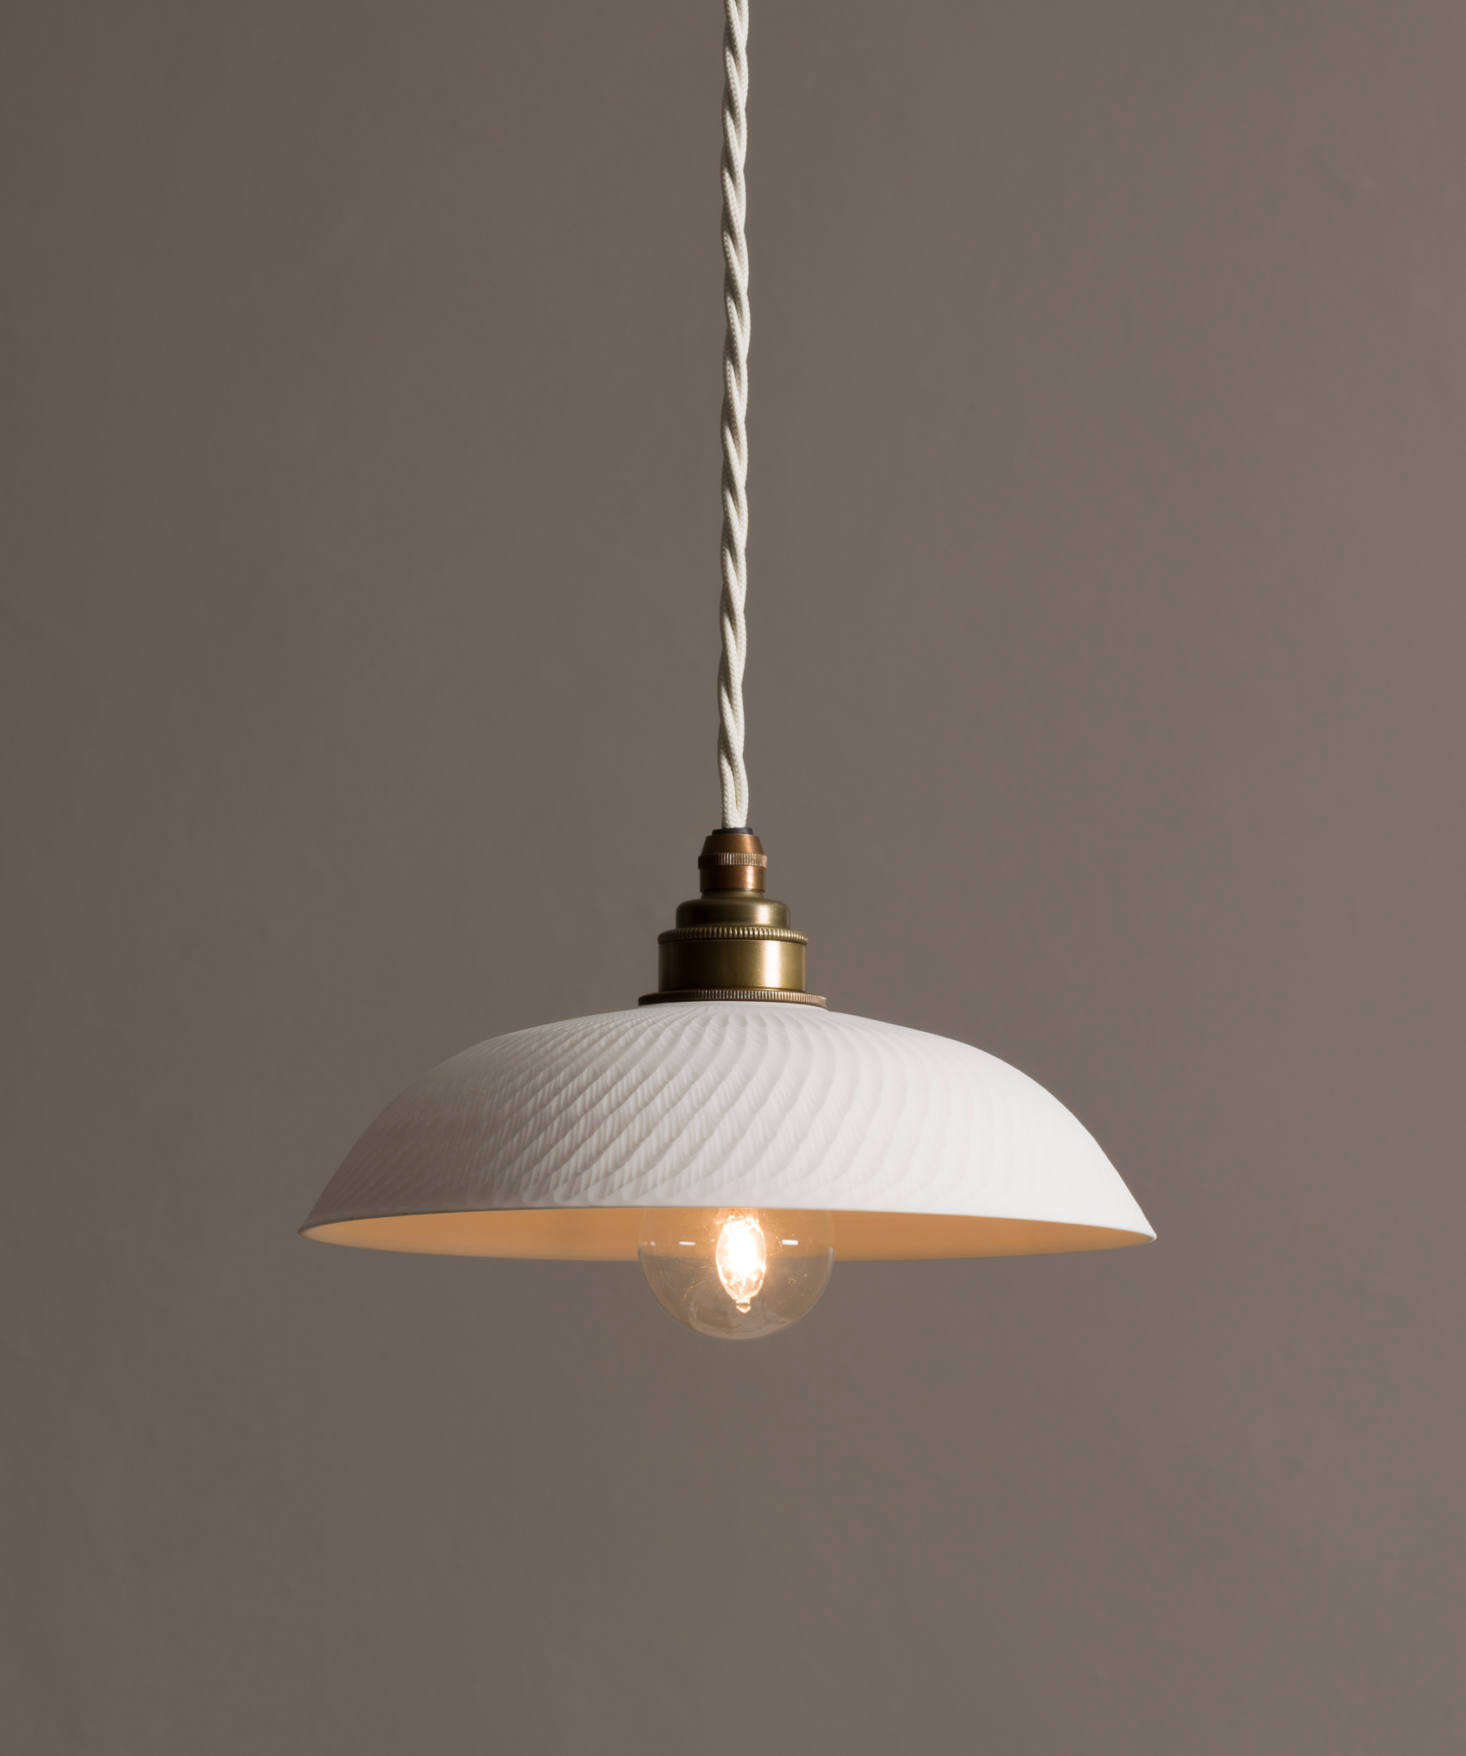 New From Devol A Nyc Showroom And Porcelain Pendant Lights Handmade In England Remodelista